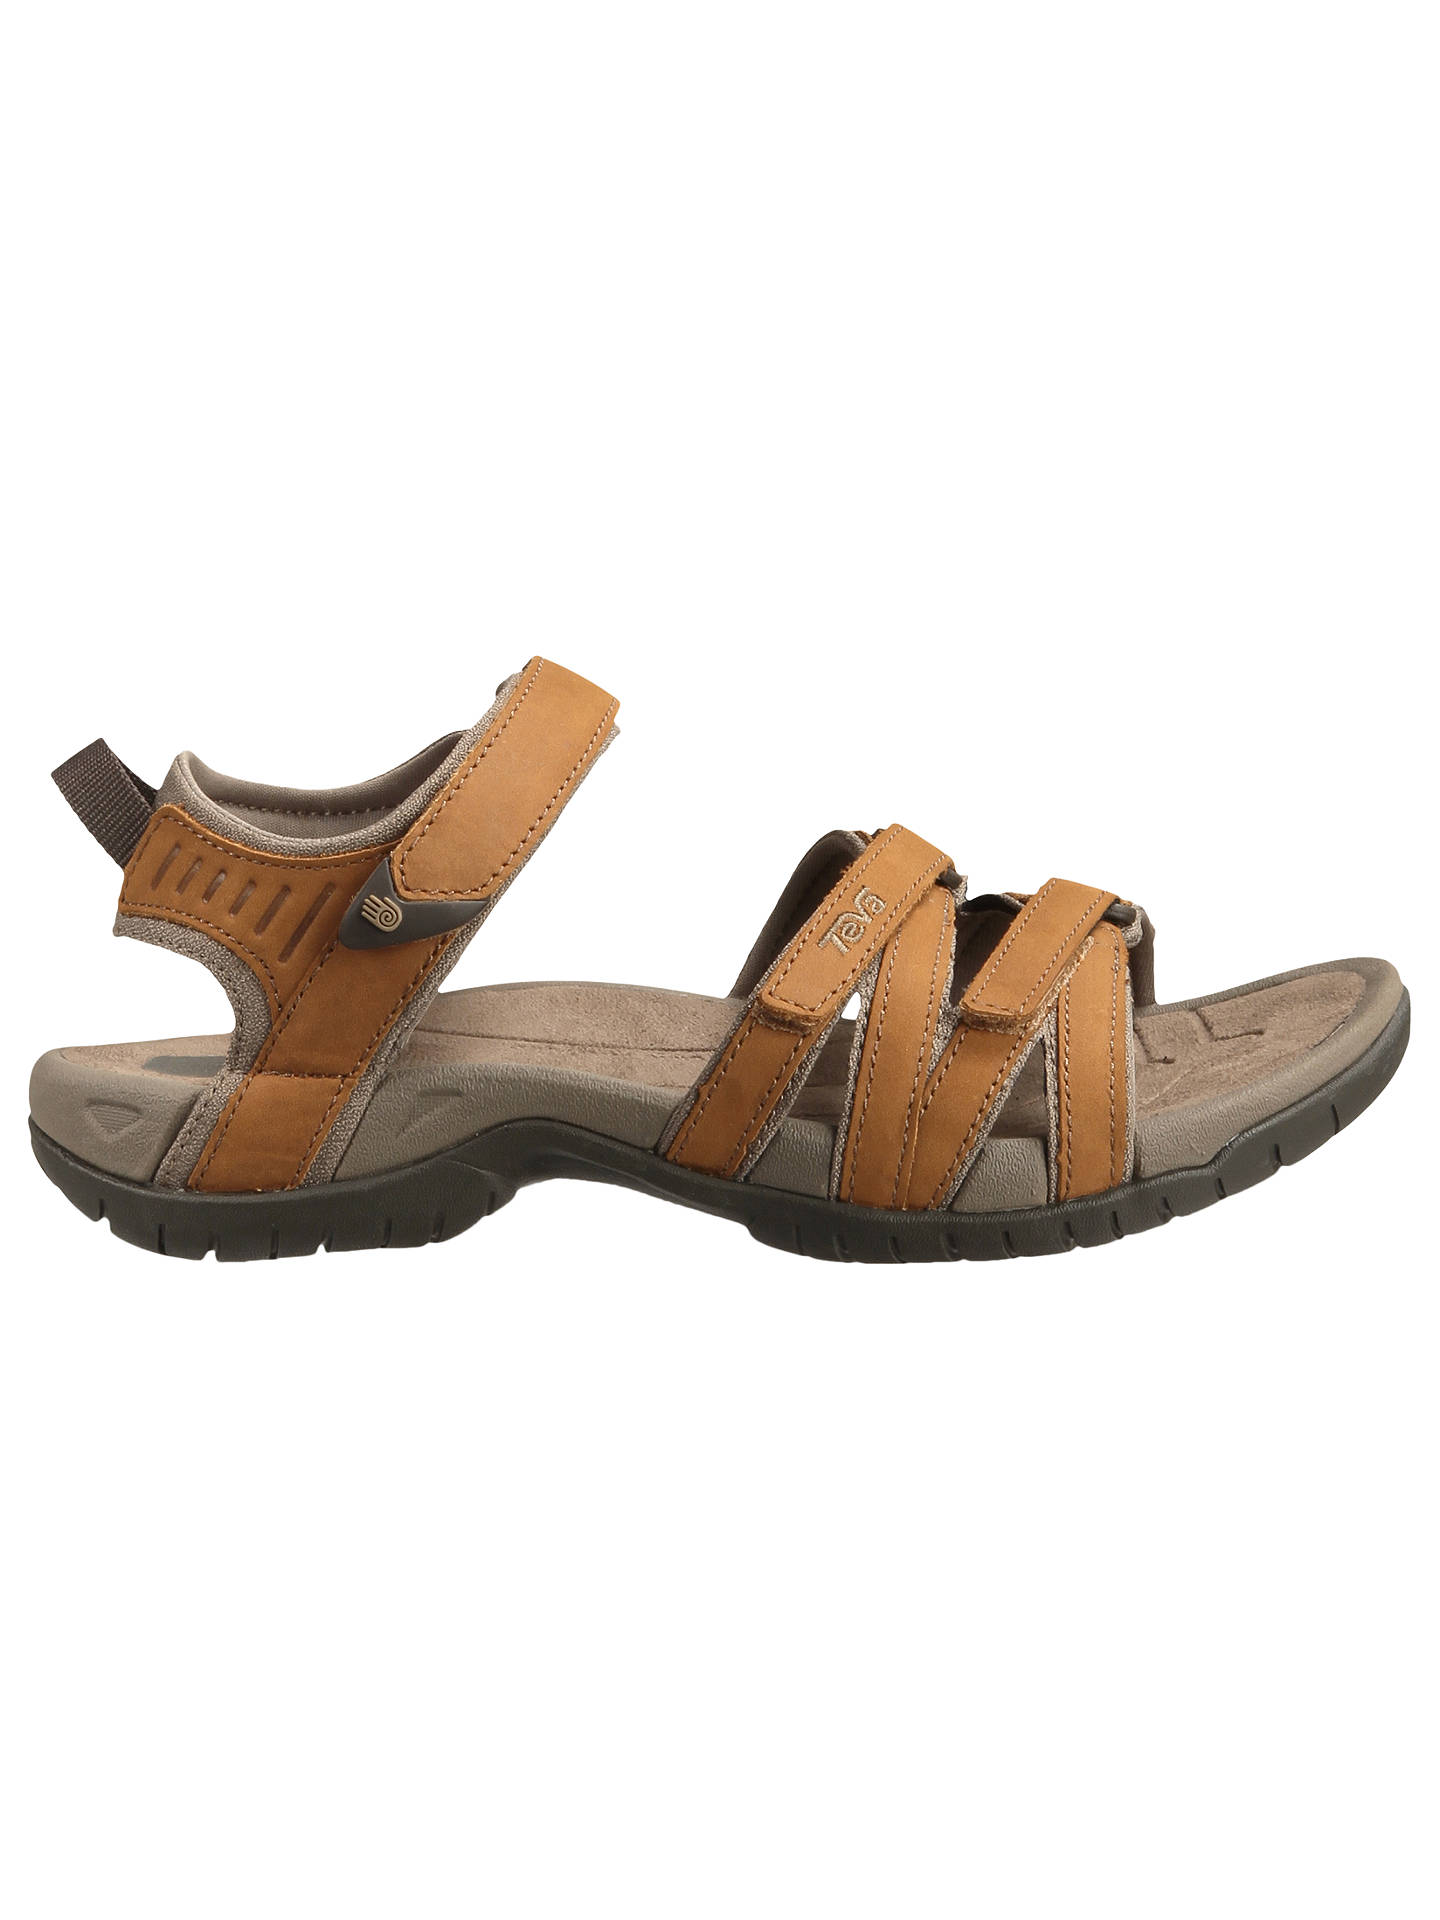 97ecde10cf7352 Buy Teva Women s Tirra Leather Sandals